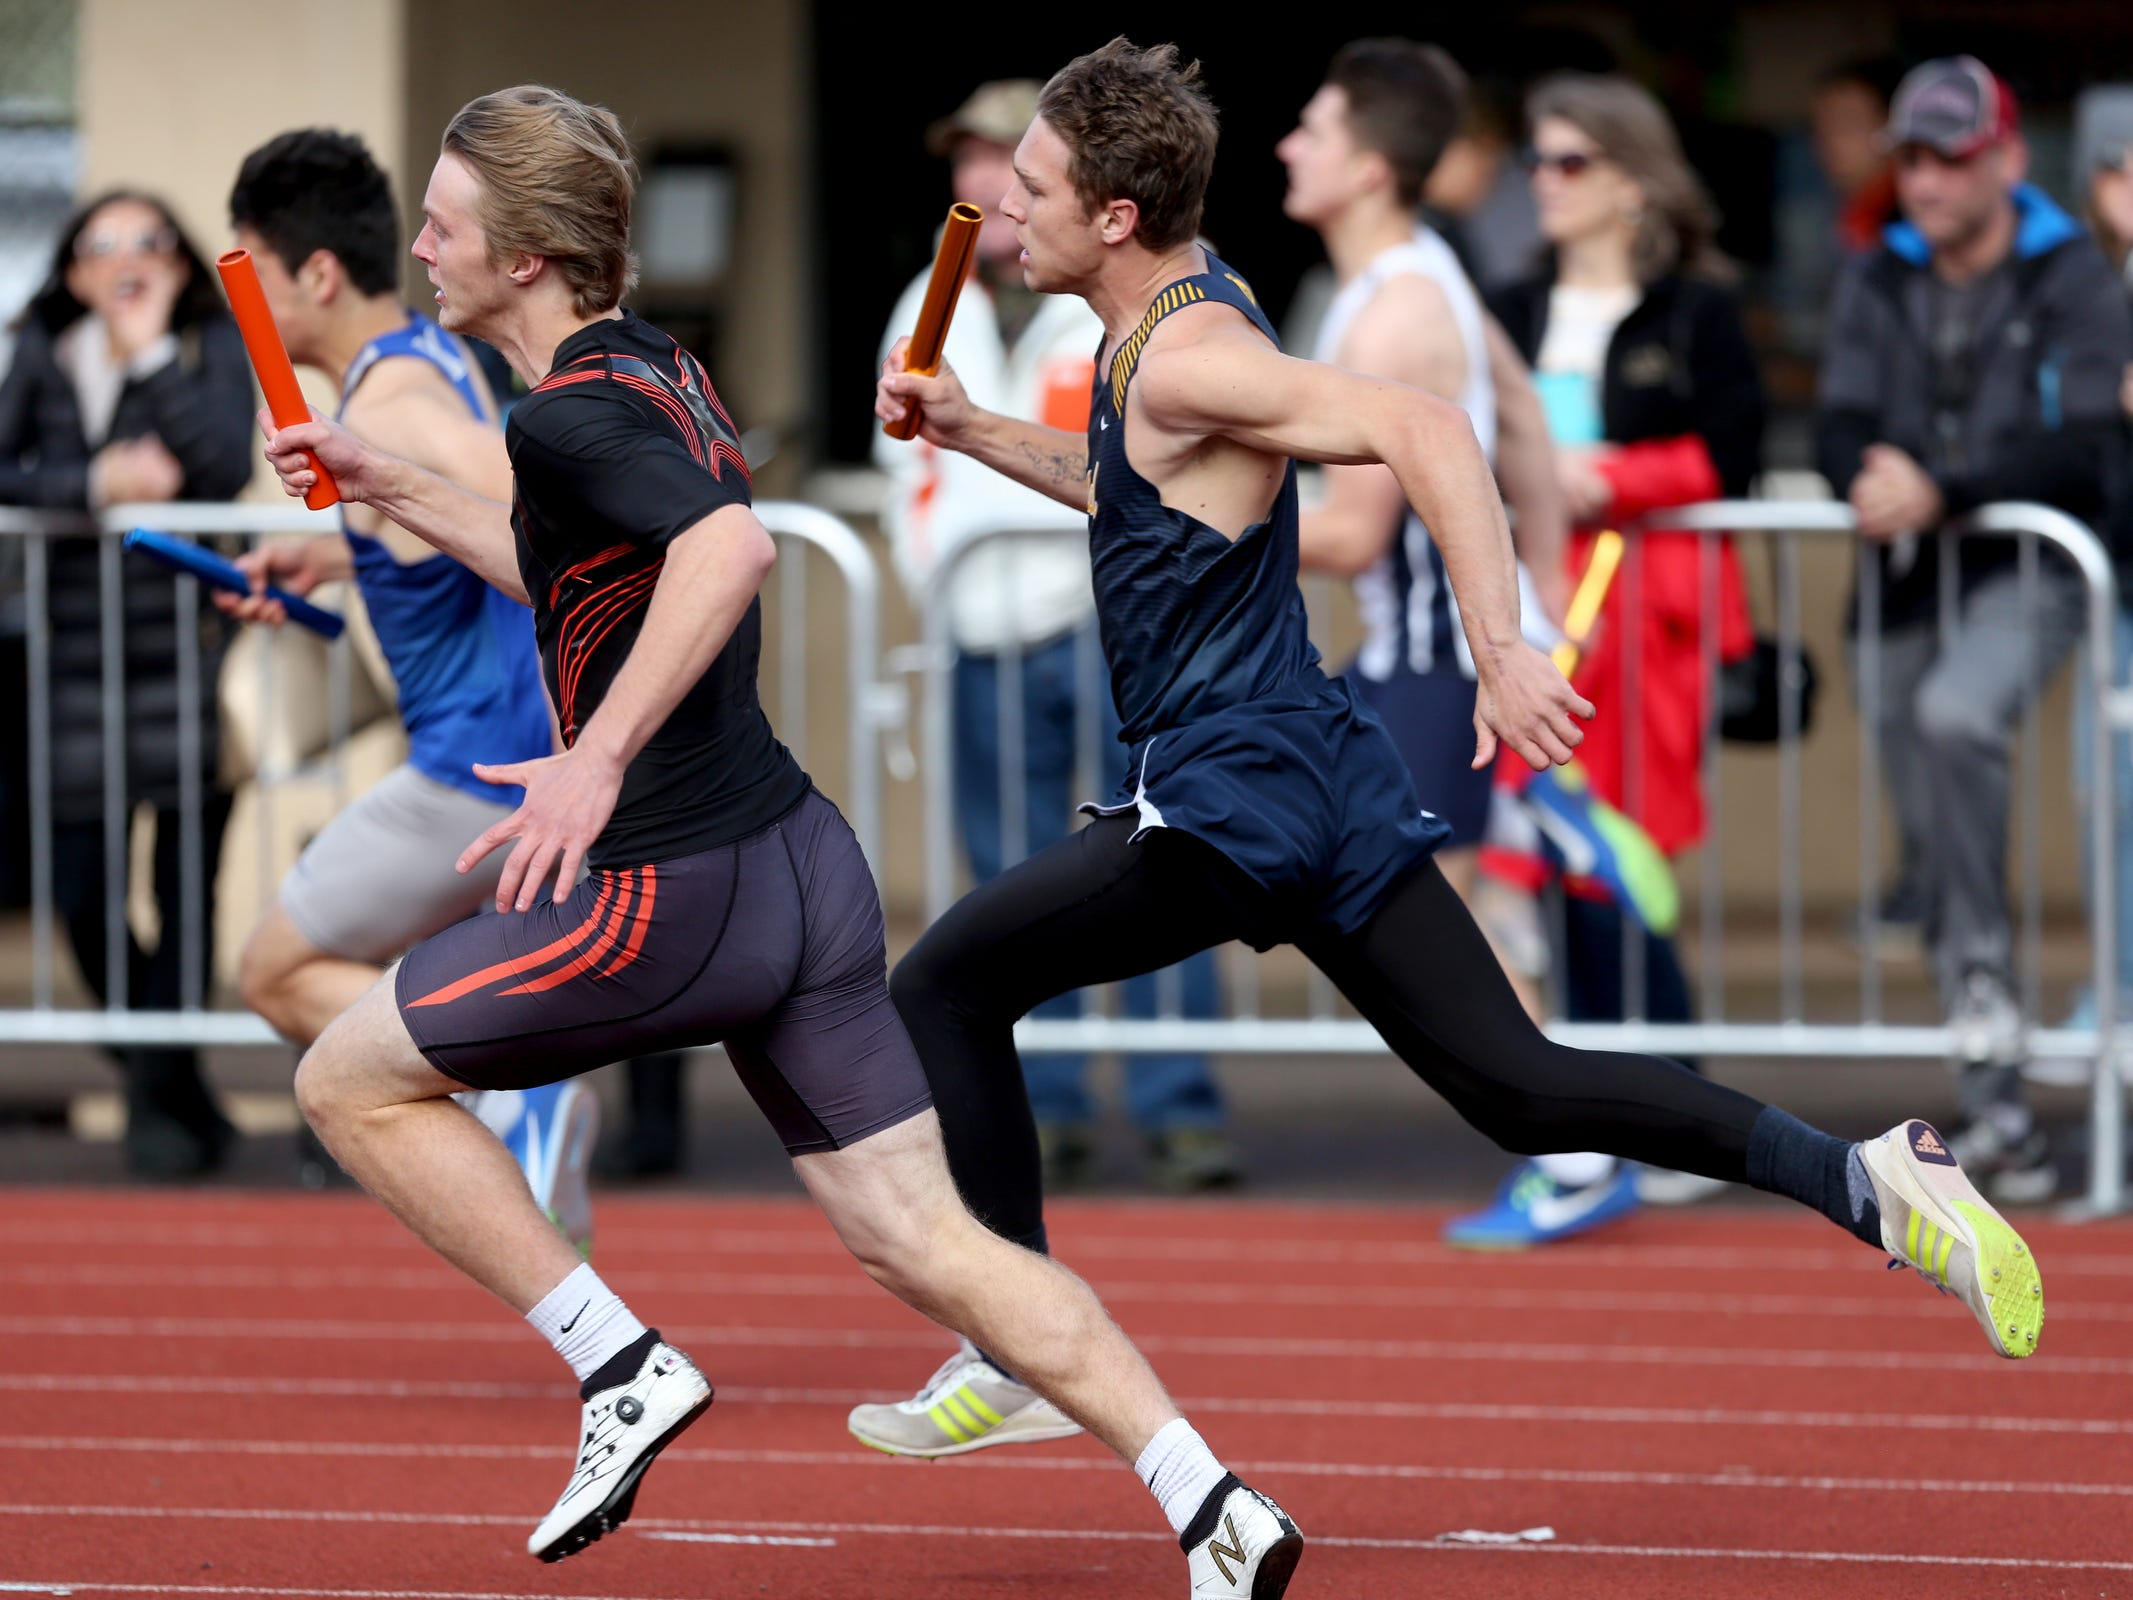 Competitors in the boys 4x100 meter relay race during the Titan Track Classic high school track and field meet at West Salem High School on April 5, 2019.